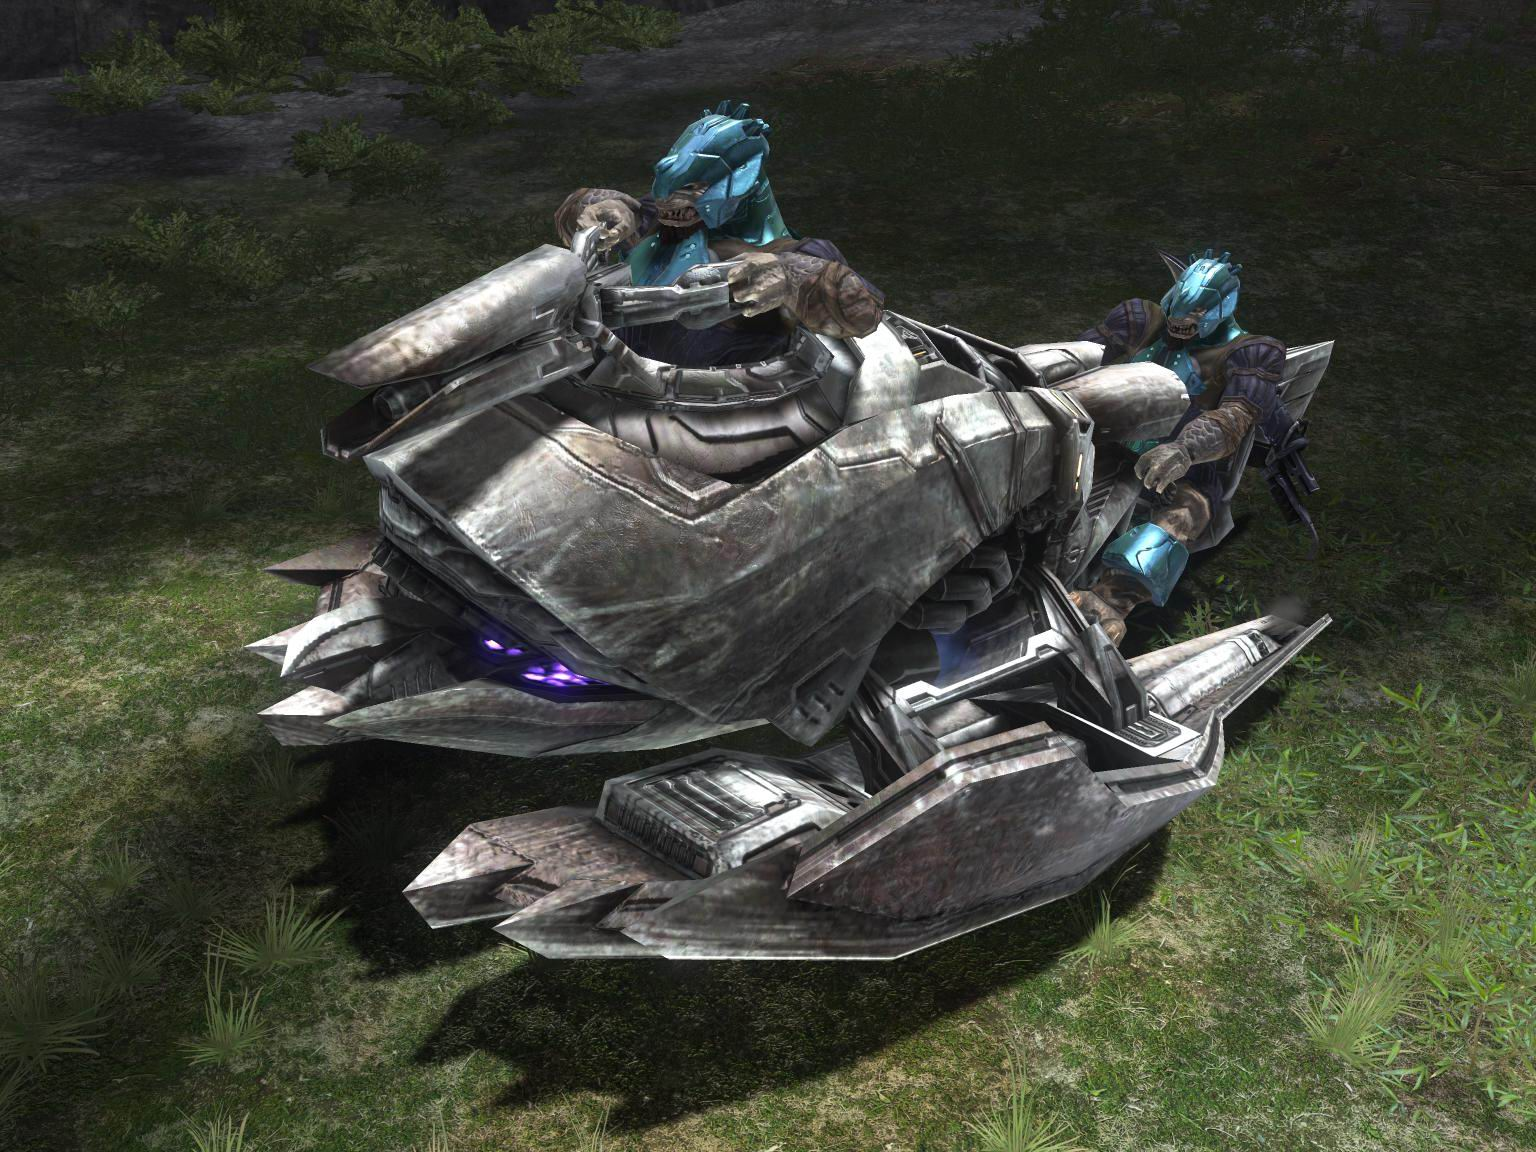 http://images.wikia.com/halo/images/c/c1/Brute_Prowler_2.jpg